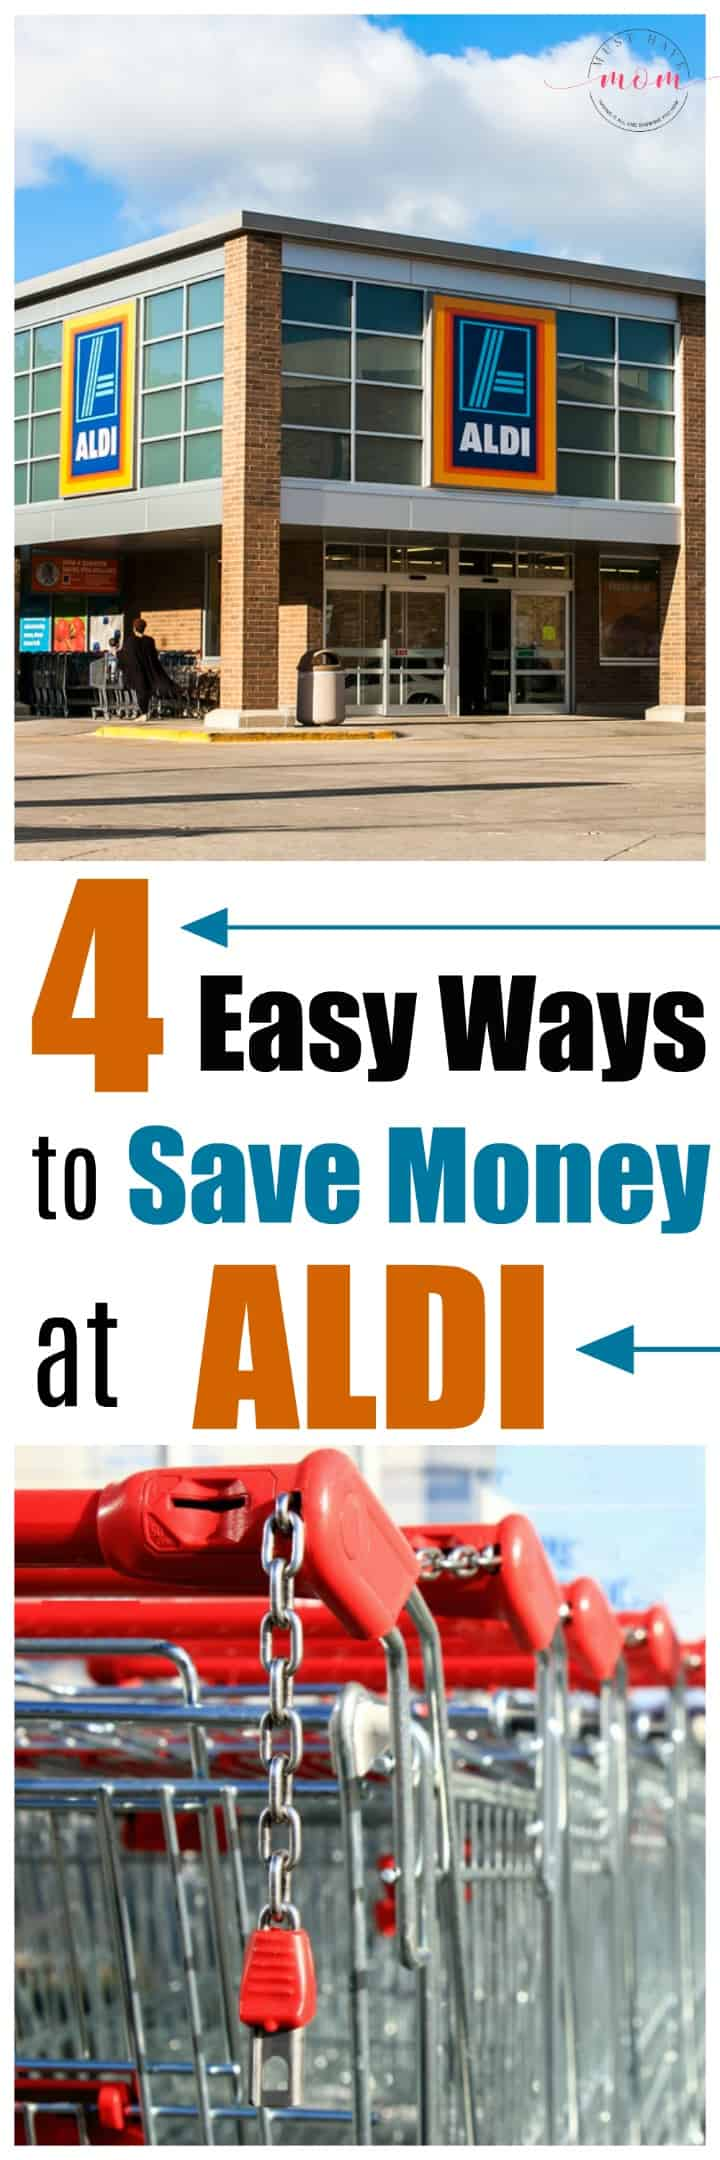 4 easy ways to save money at ALDI! Have you tried these money savings tips??